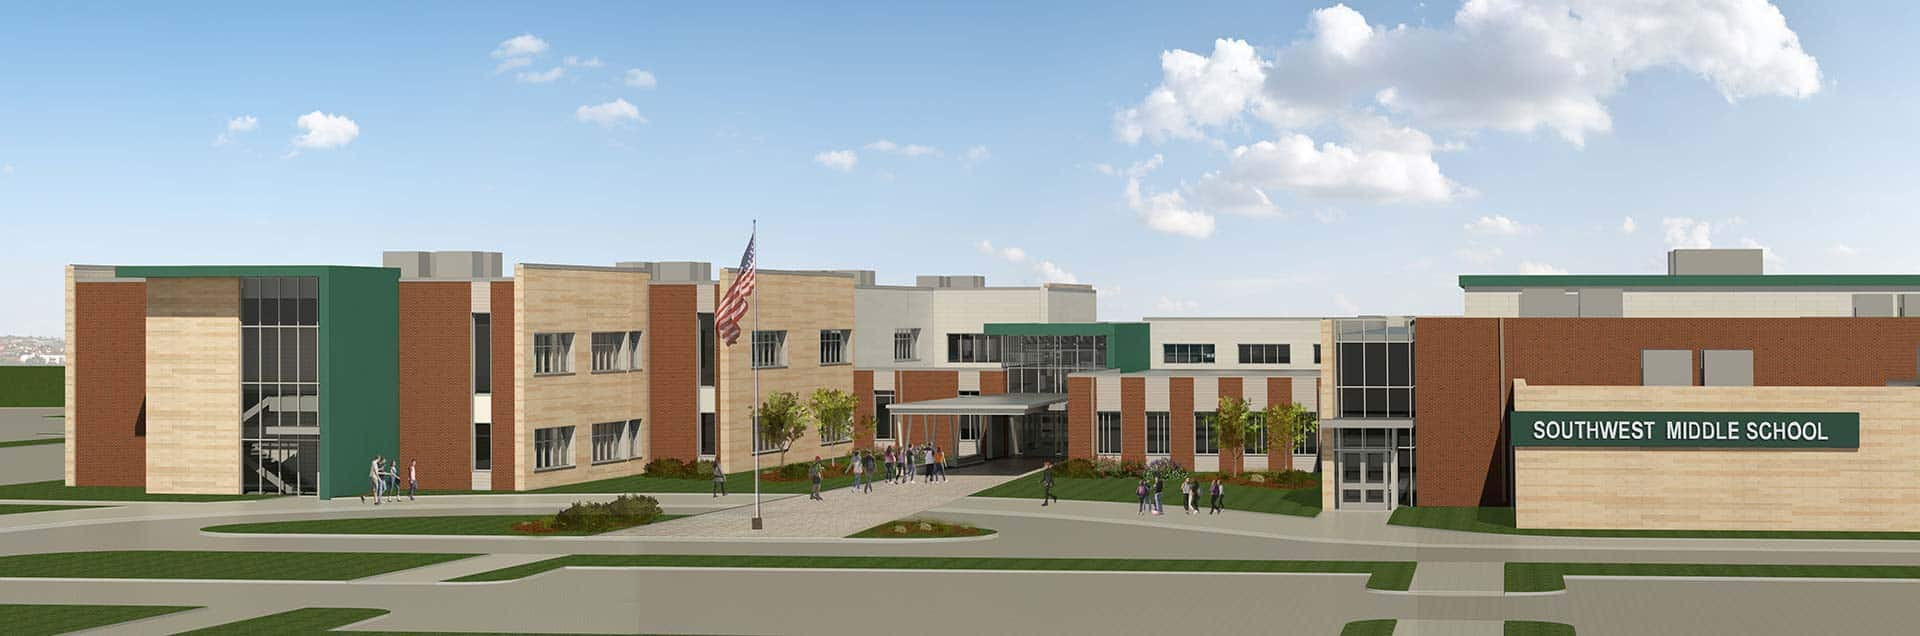 CPS-Middle School Exterior Overall